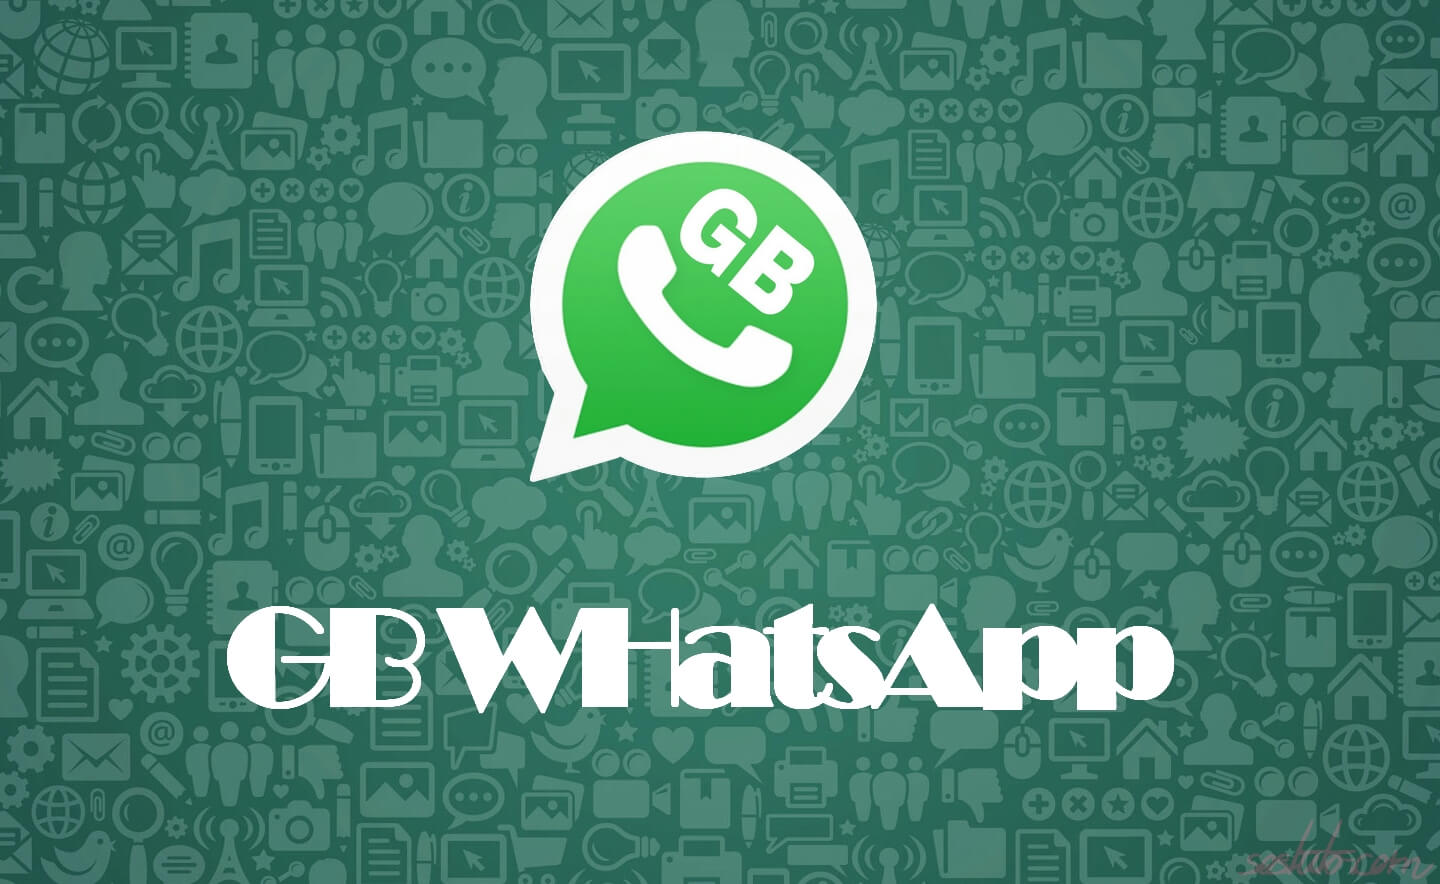 GBWhatsApp Télécharger GBWhatsApp 6.55 et WhatsApp plus 6.55 pour Android